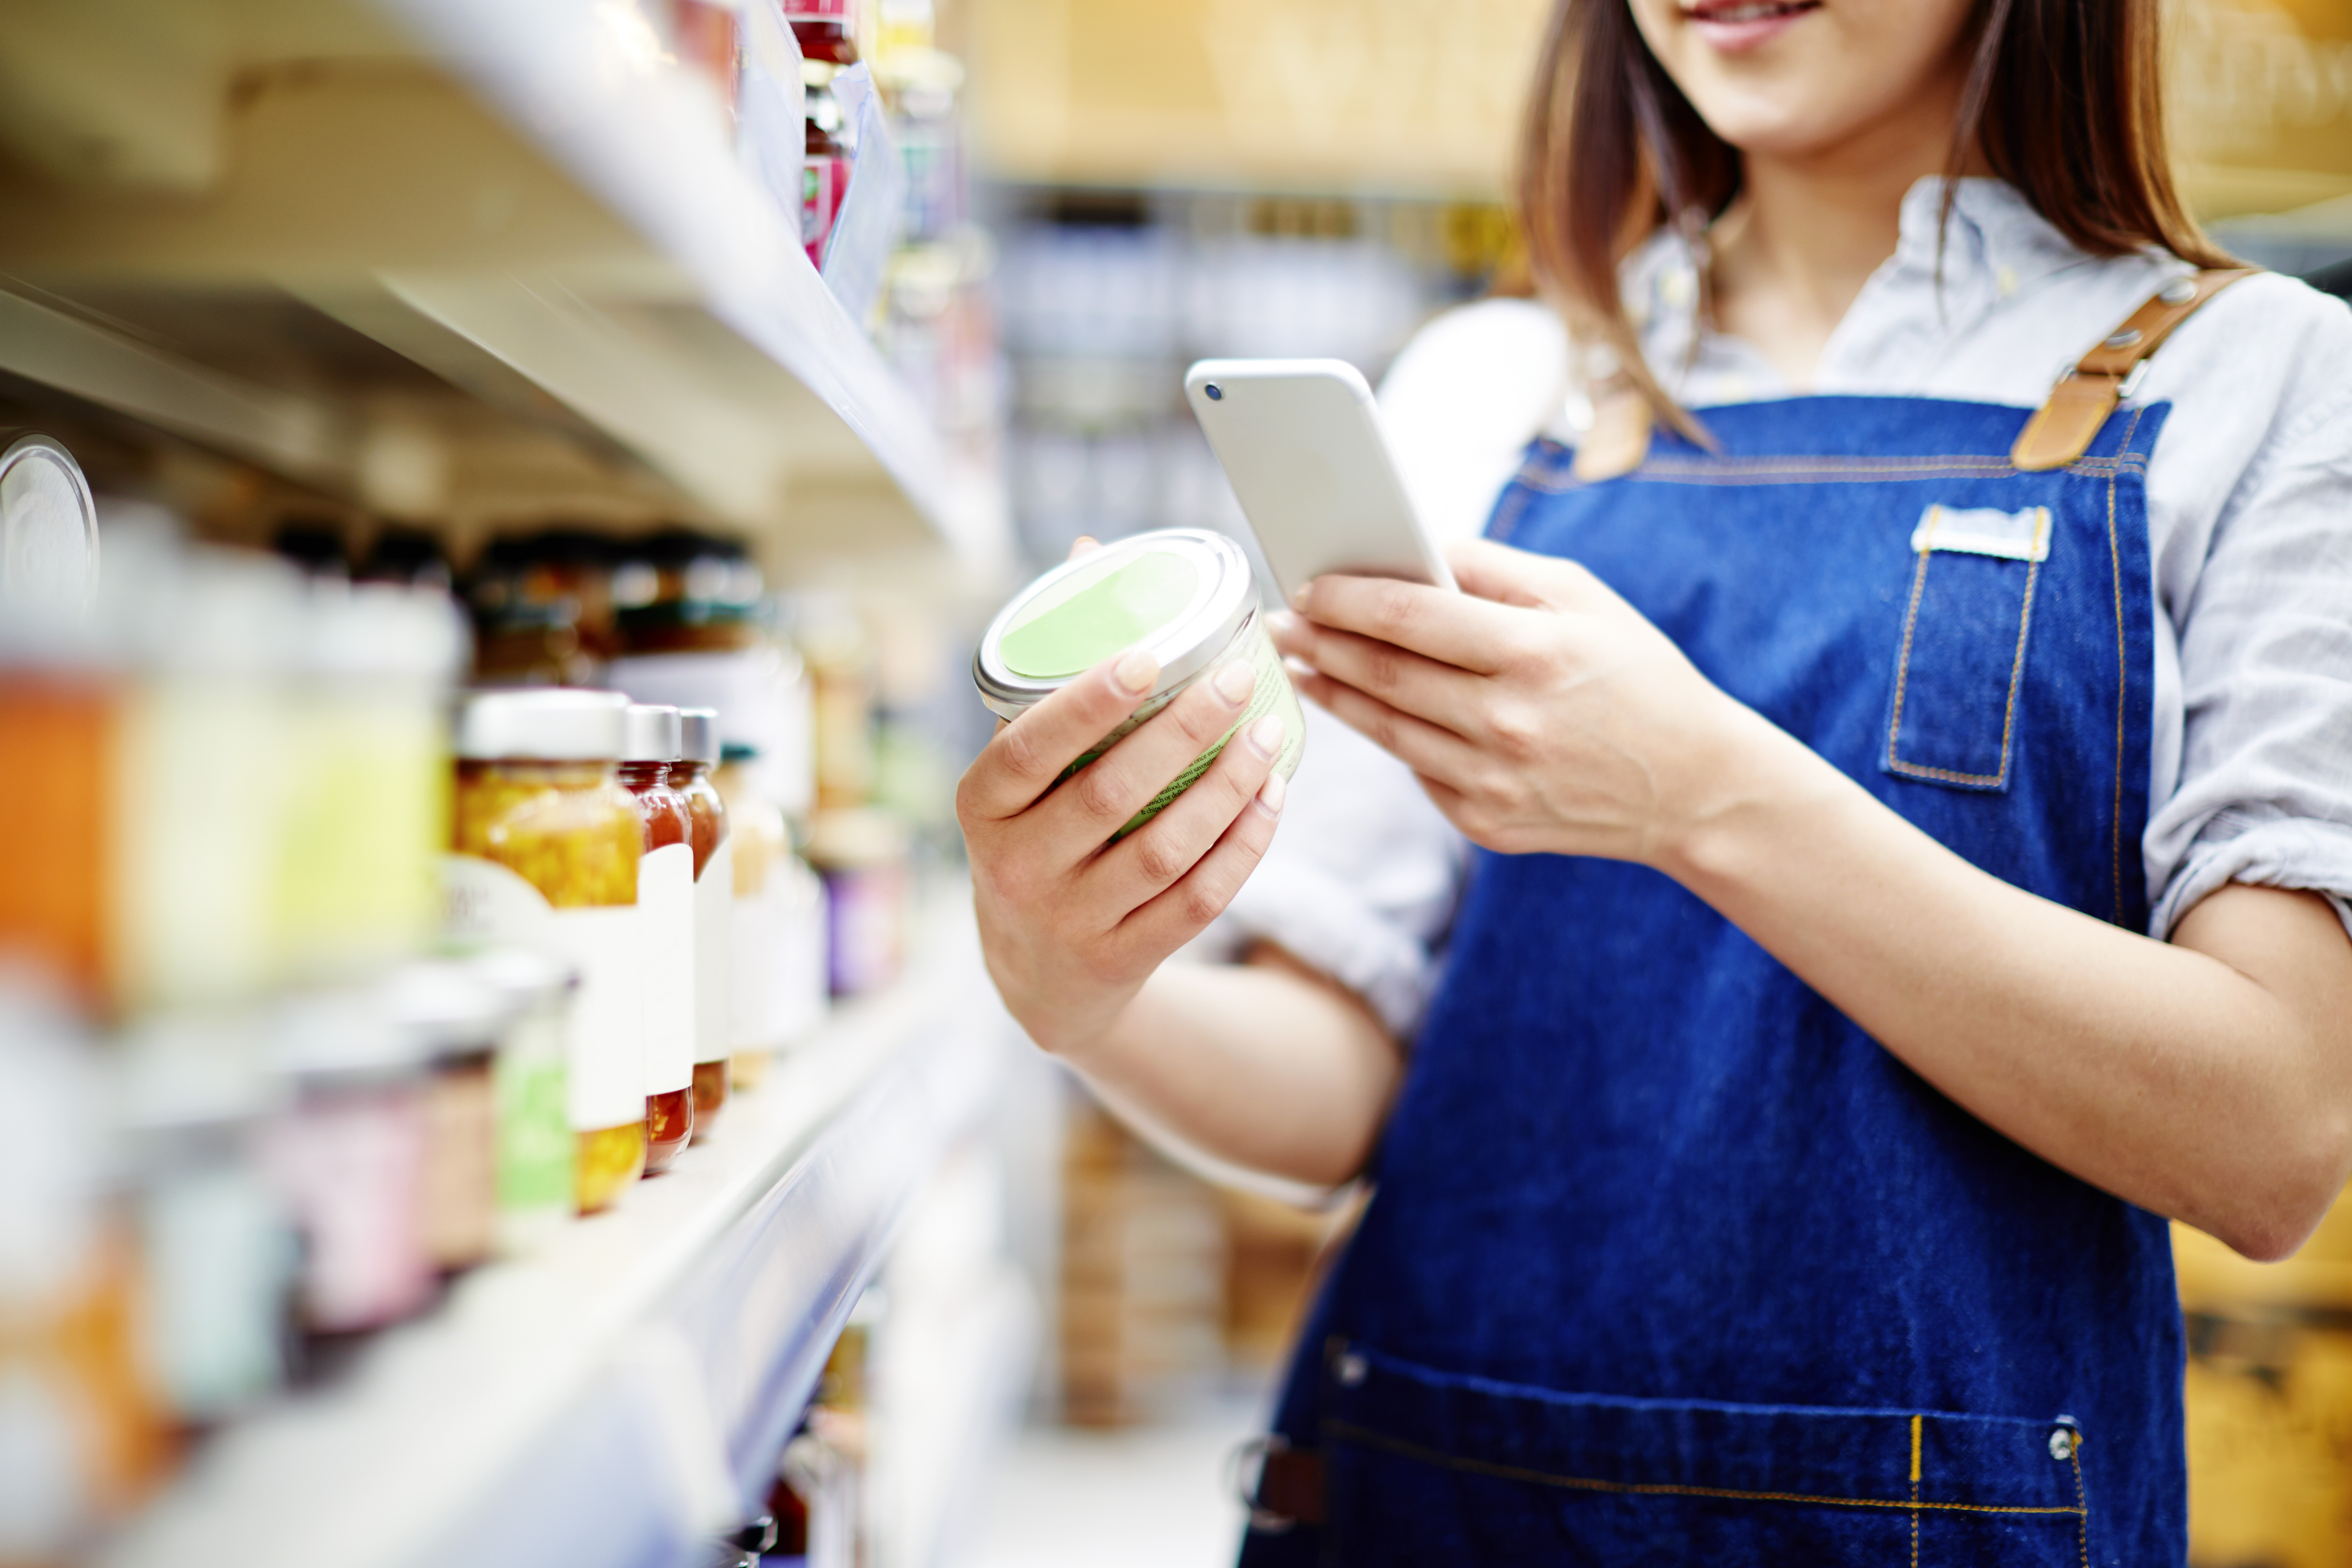 Deli owner scanning label on food container with smart phone